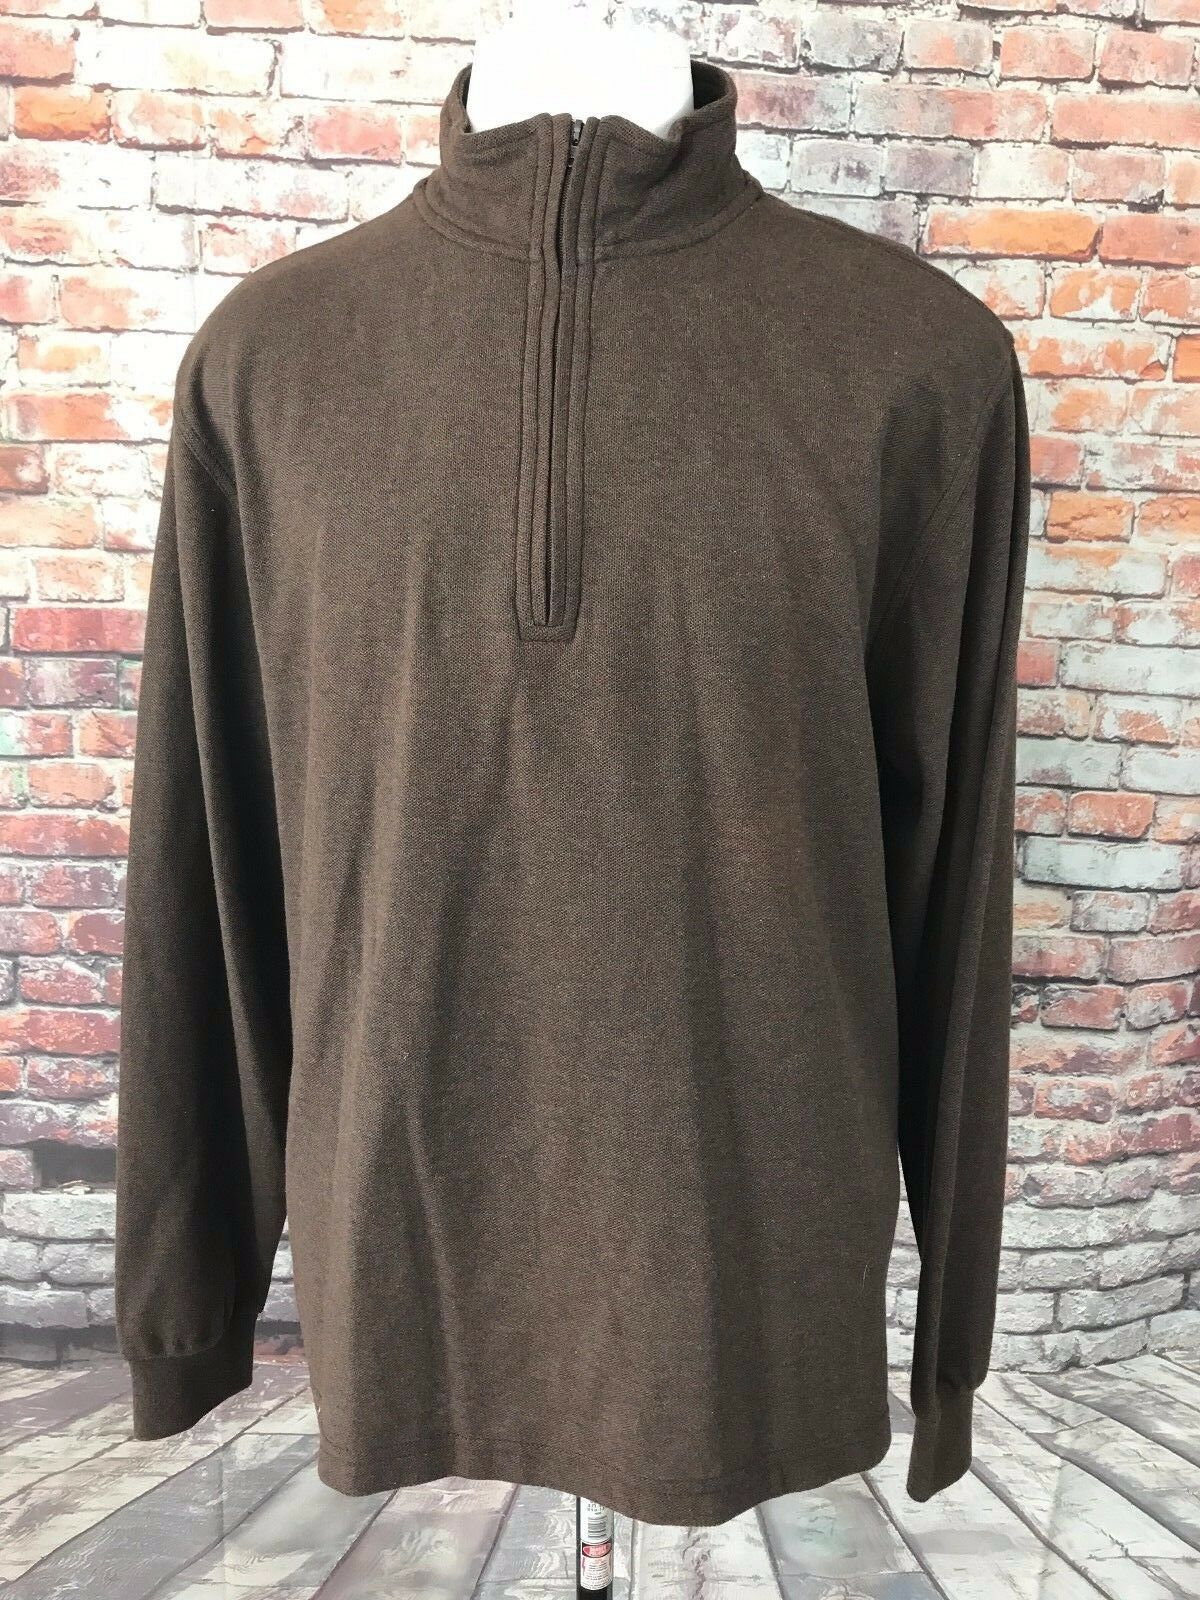 JOS.A.BANK TREVELER PERFORMANCE  Herren COTTON 1/2 ZIP SWEATER SIZE LARGE RET 89.5